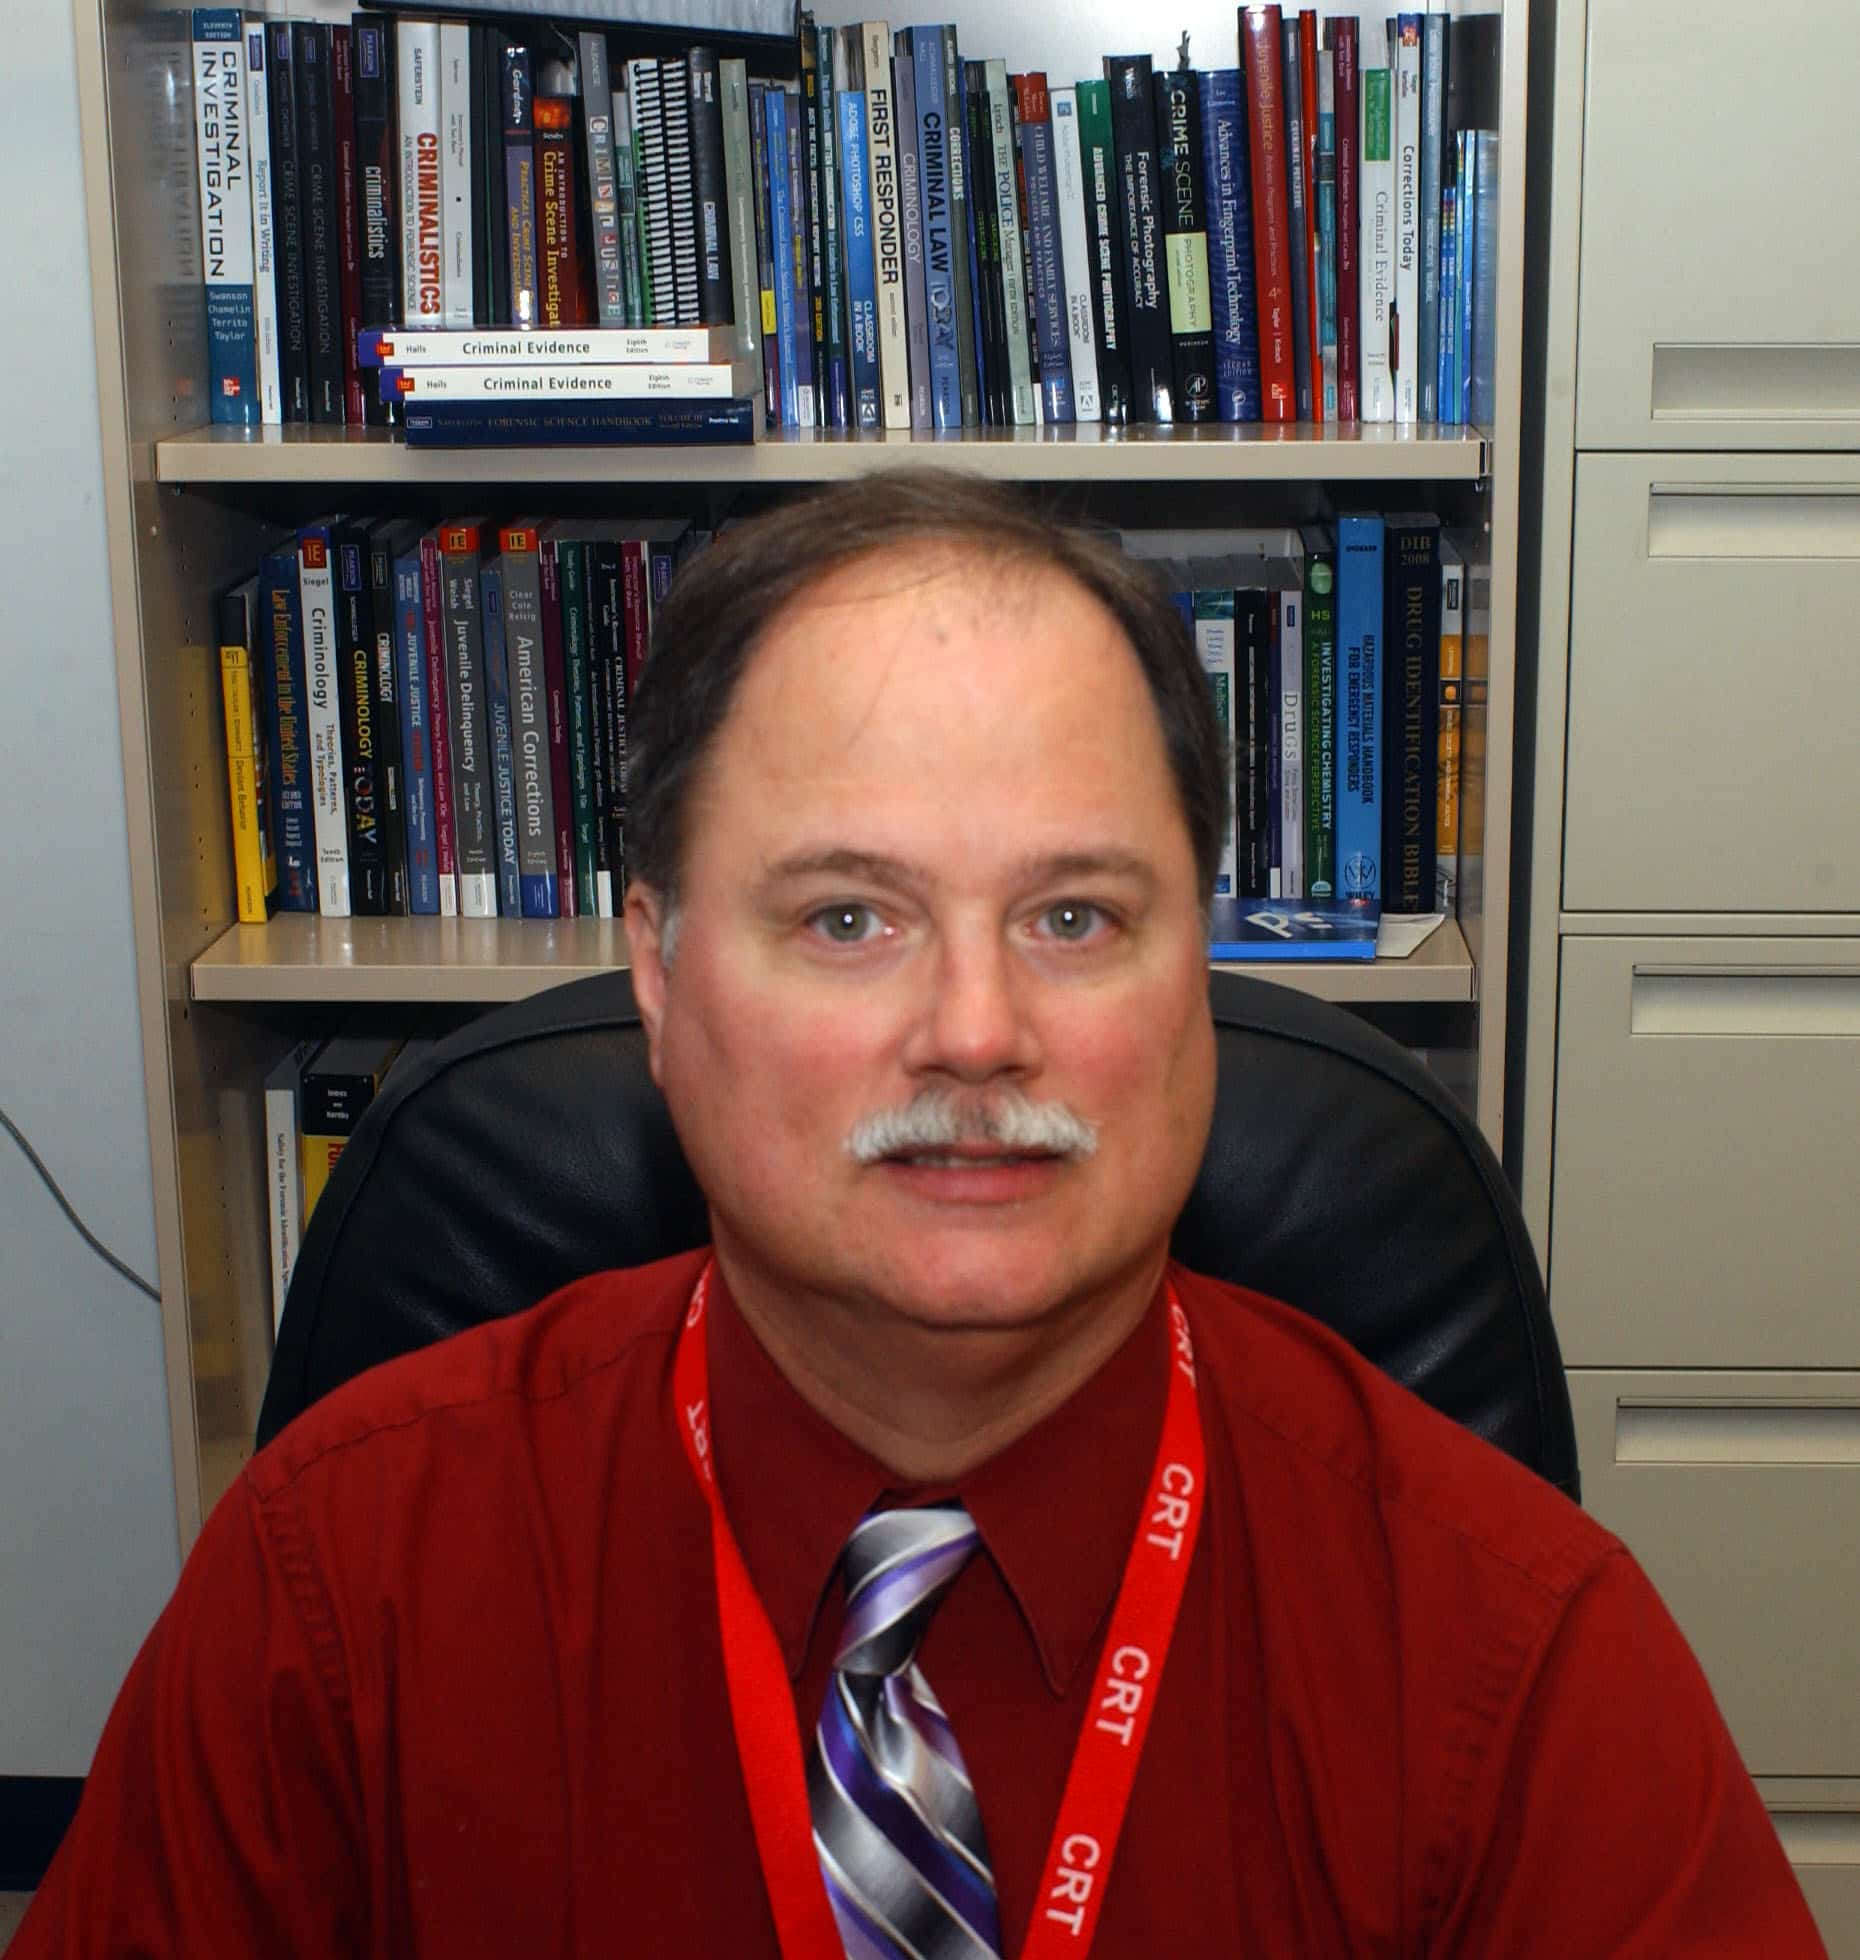 FACULTY SPOTLIGHT: Tim Seguin Inducted Into Southwest Florida Police Chiefs Association